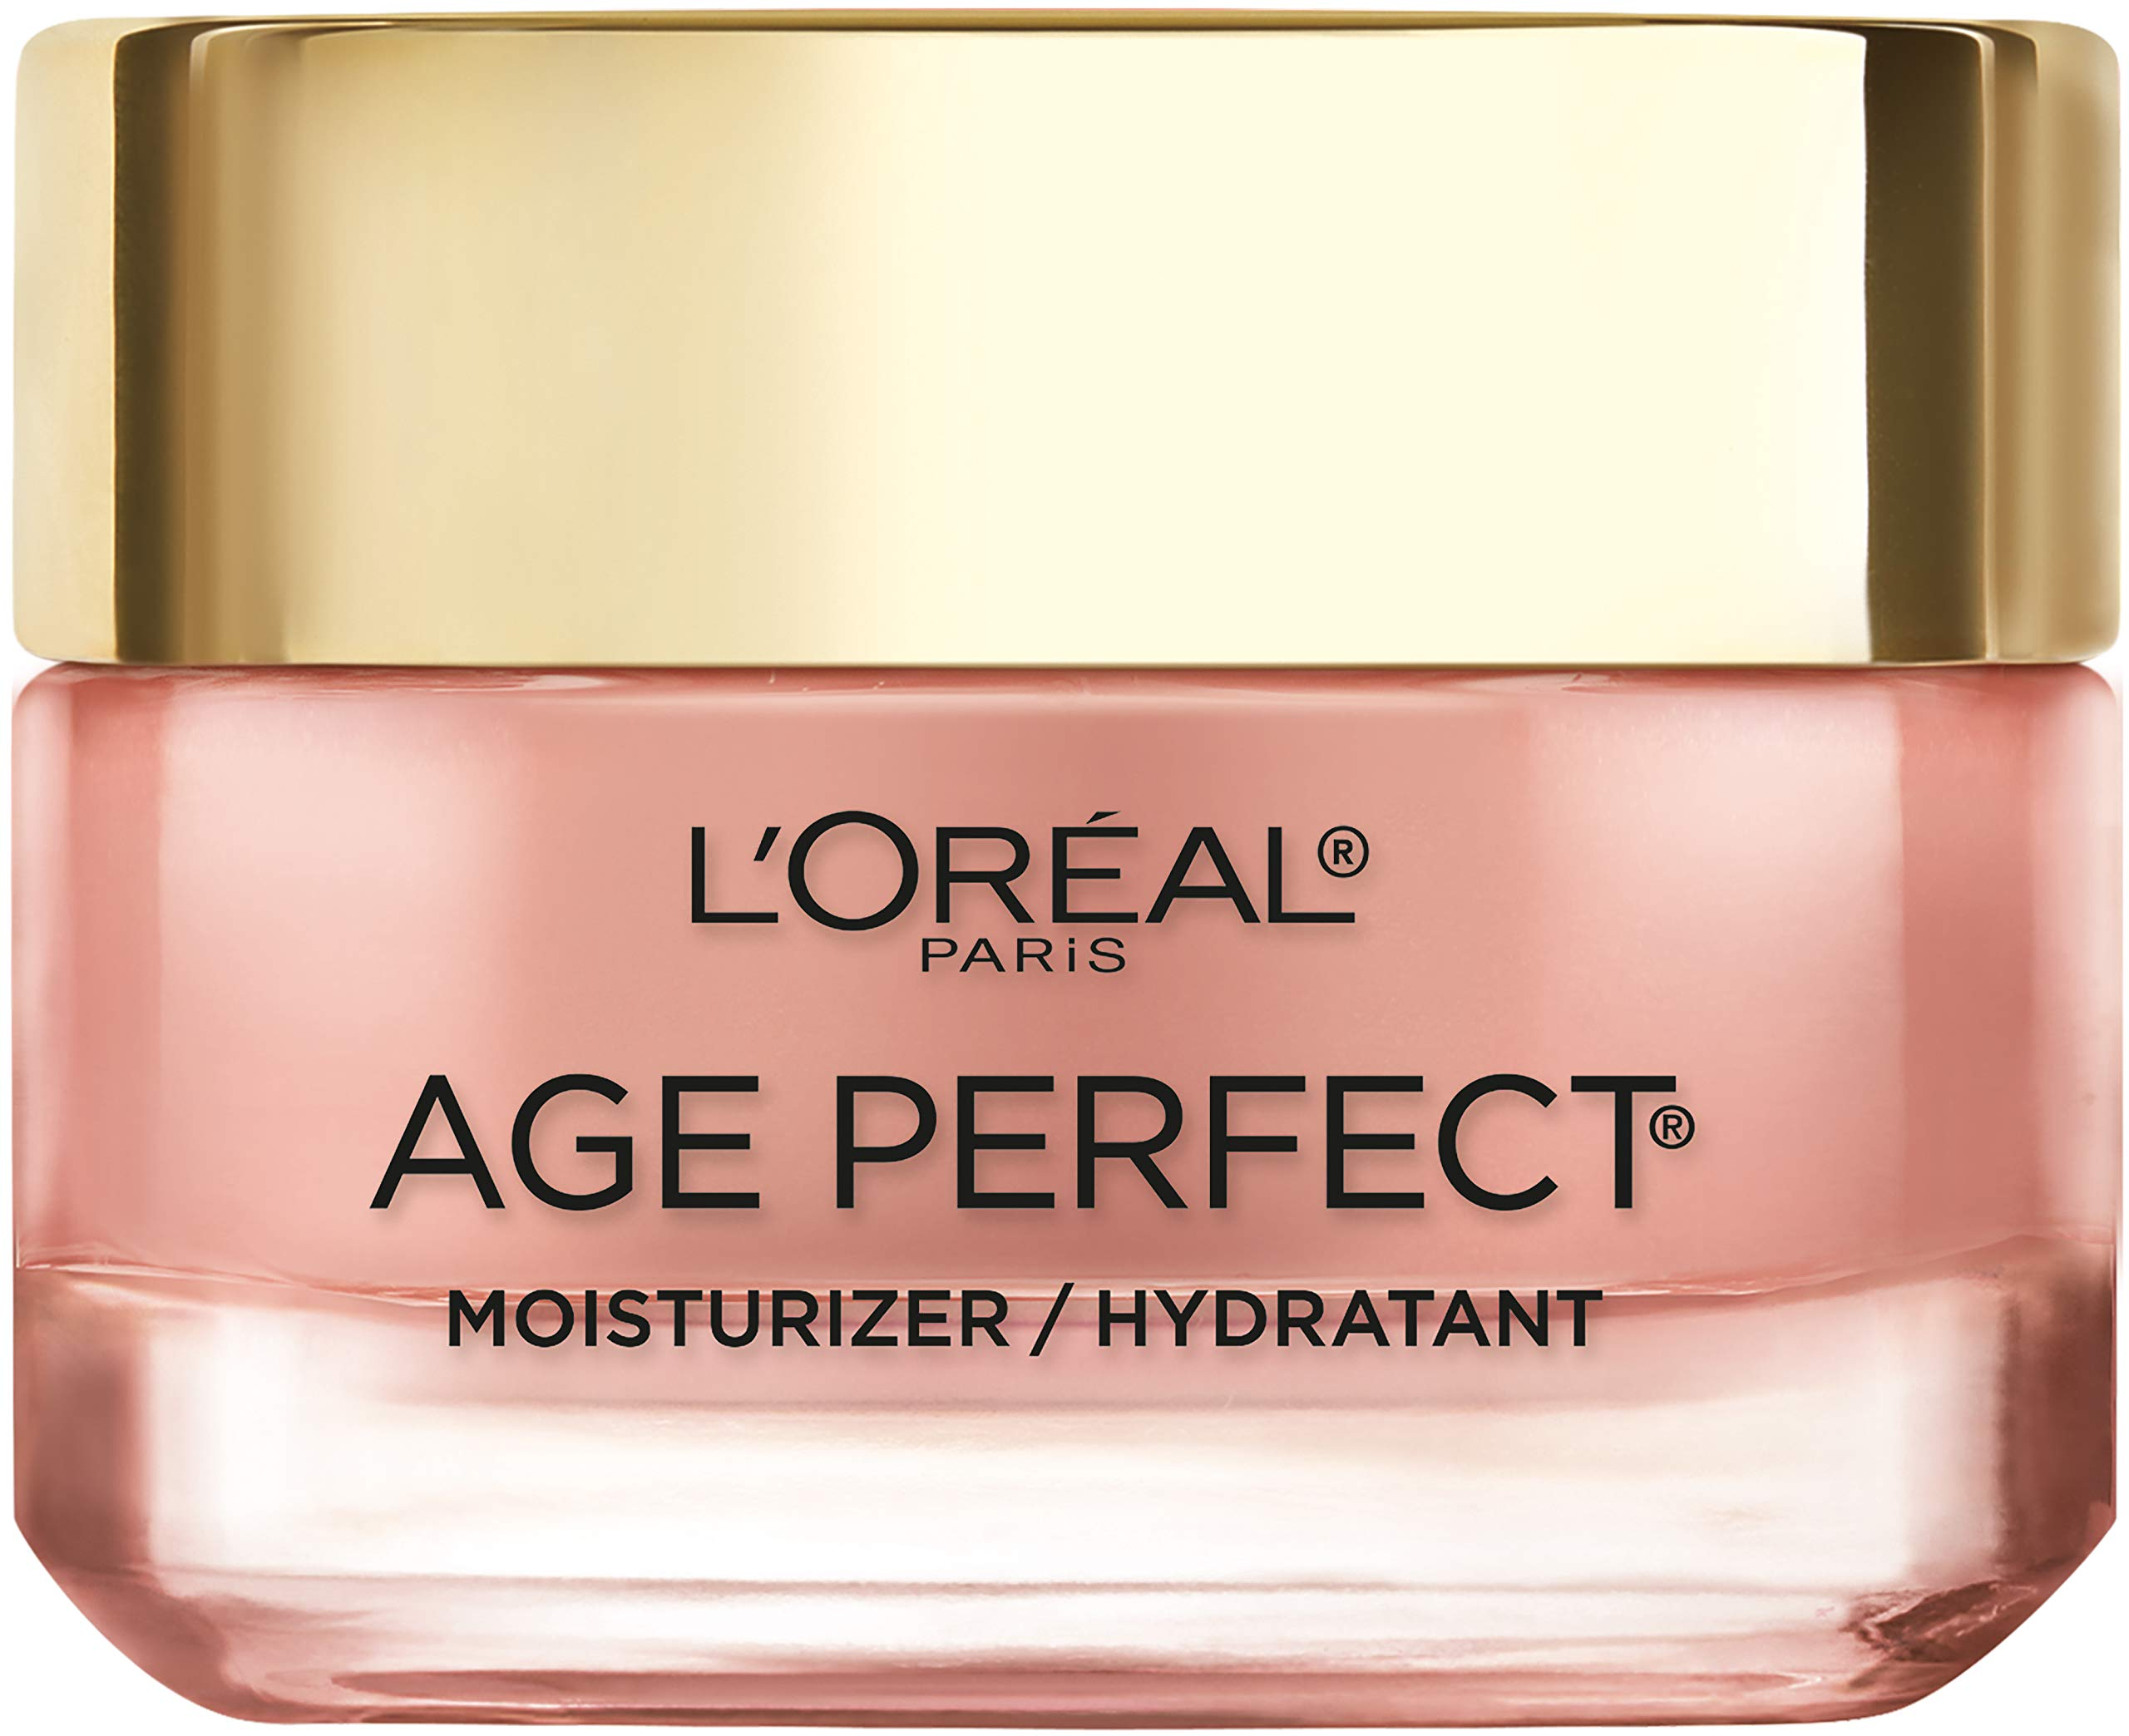 Face Moisturizer by L'Oreal Paris Skin Care I Age Perfect Rosy Tone Moisturizer for Visibly Younger Looking Skin I Anti-Aging Day Cream I 1.7 oz. by L'Oreal Paris